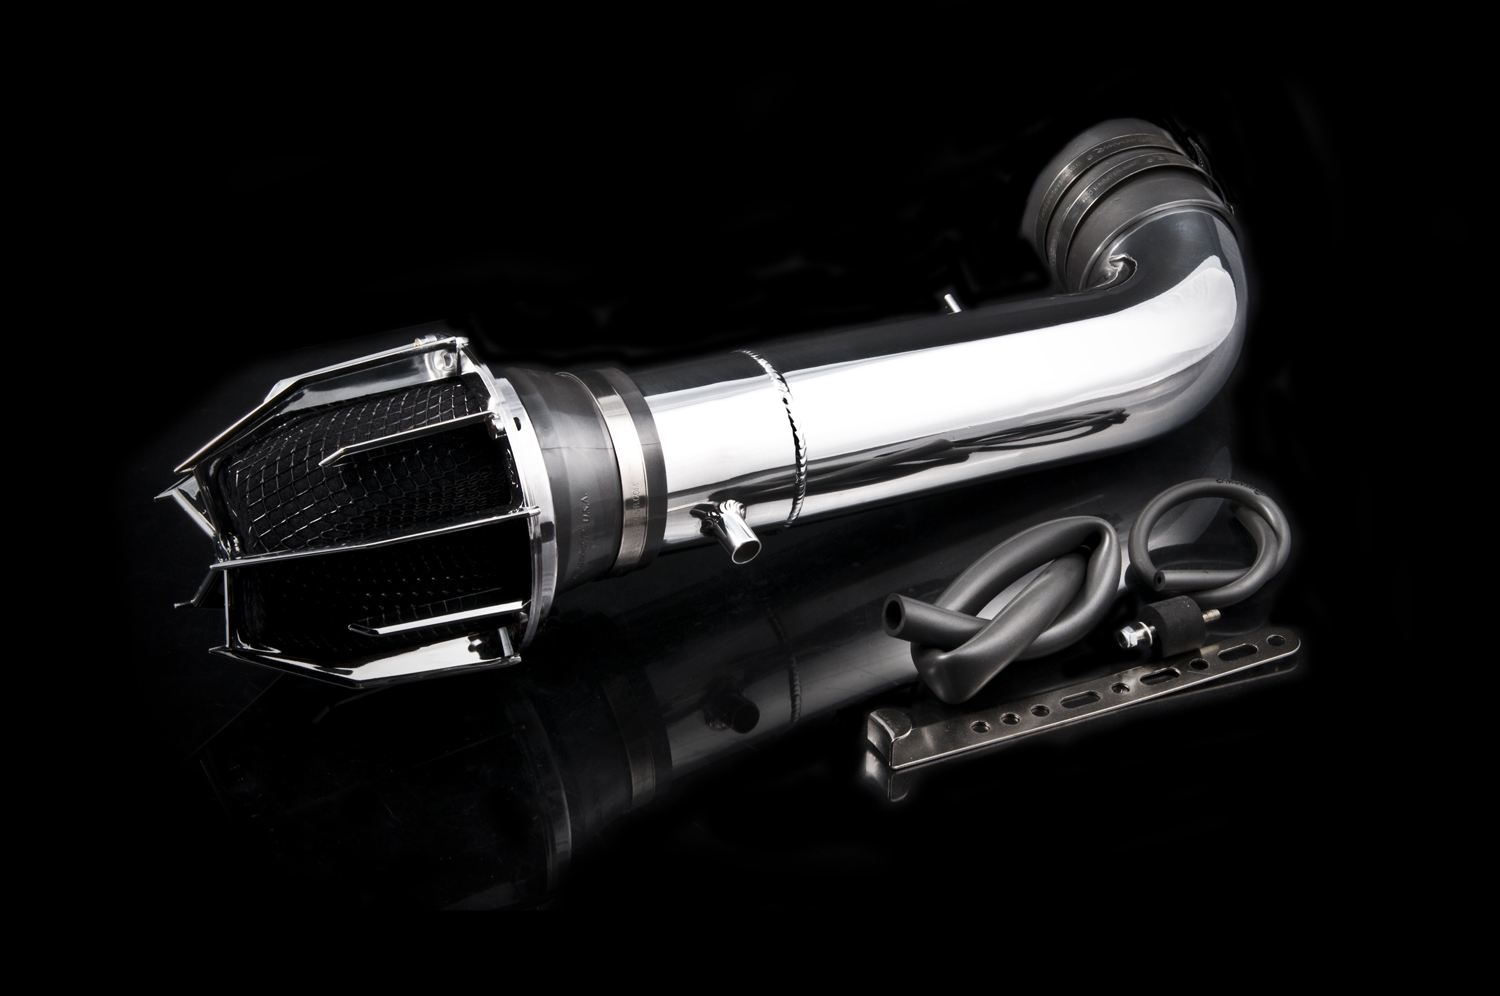 Chevrolet Impala V8 1994-1996 Weapon-R Dragon Air Intake